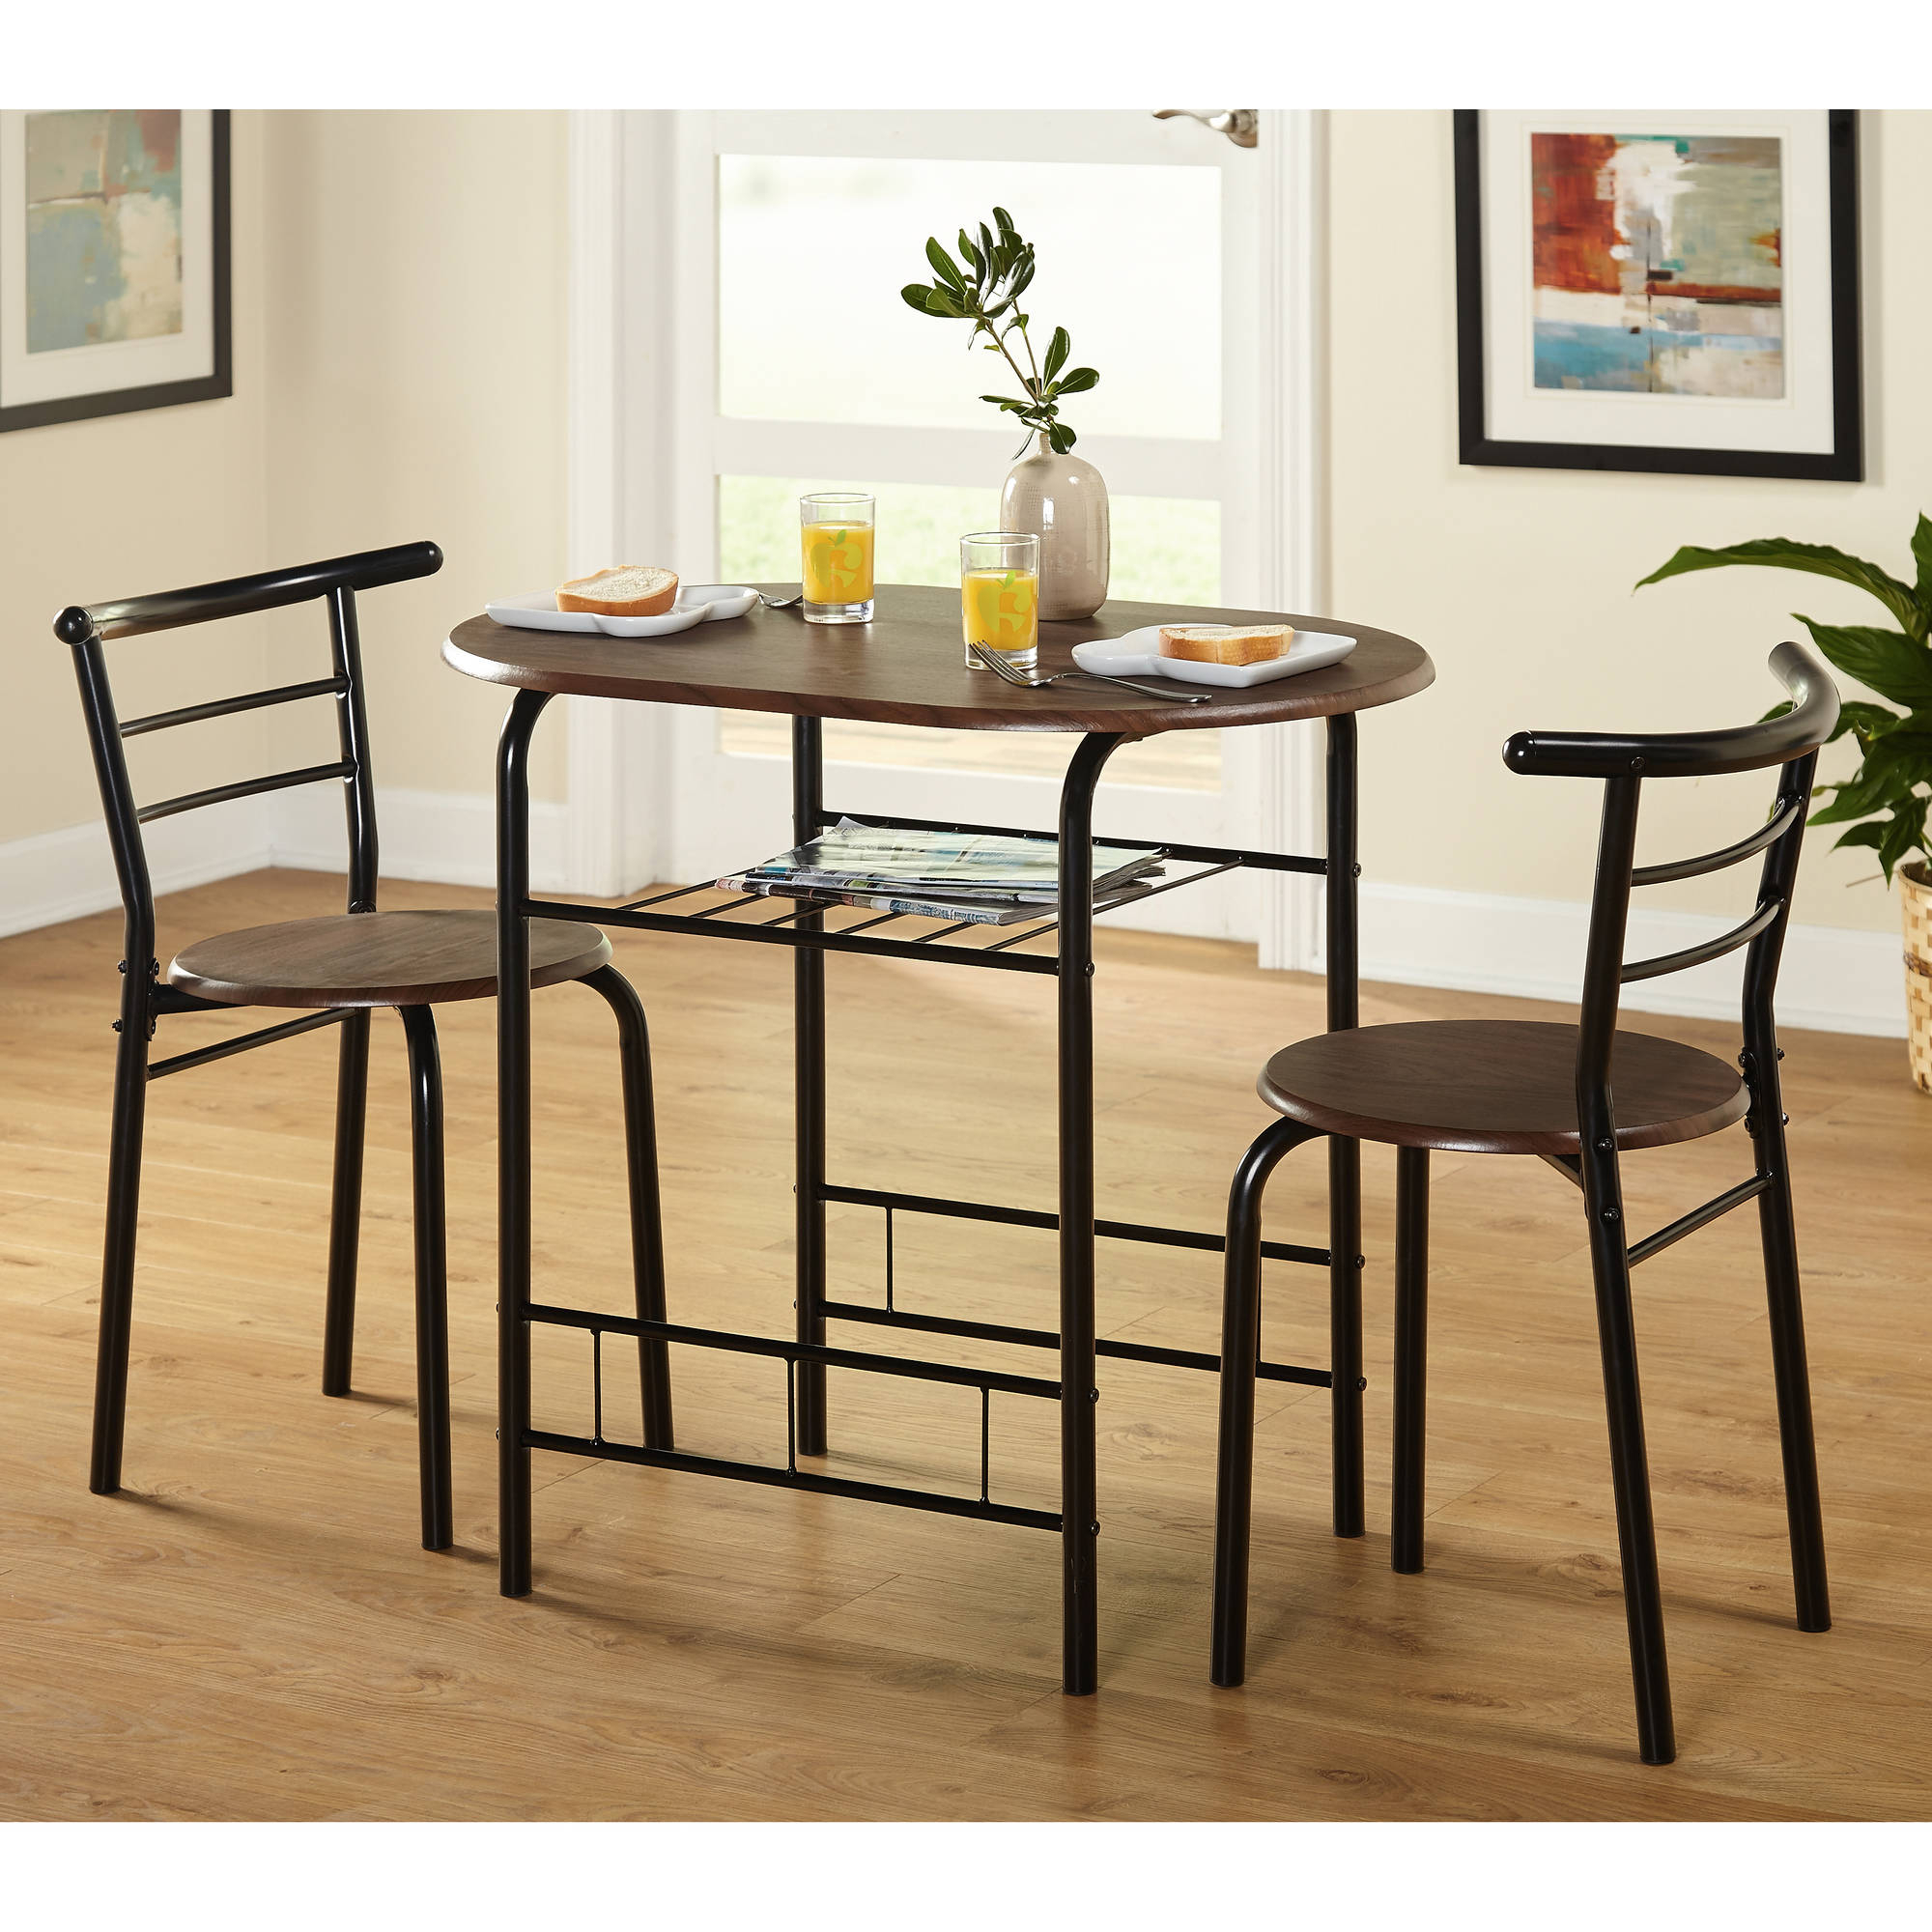 5 Piece Breakfast Nook Dining Sets For Widely Used Tms 3 Piece Bistro Dining Set (View 14 of 20)